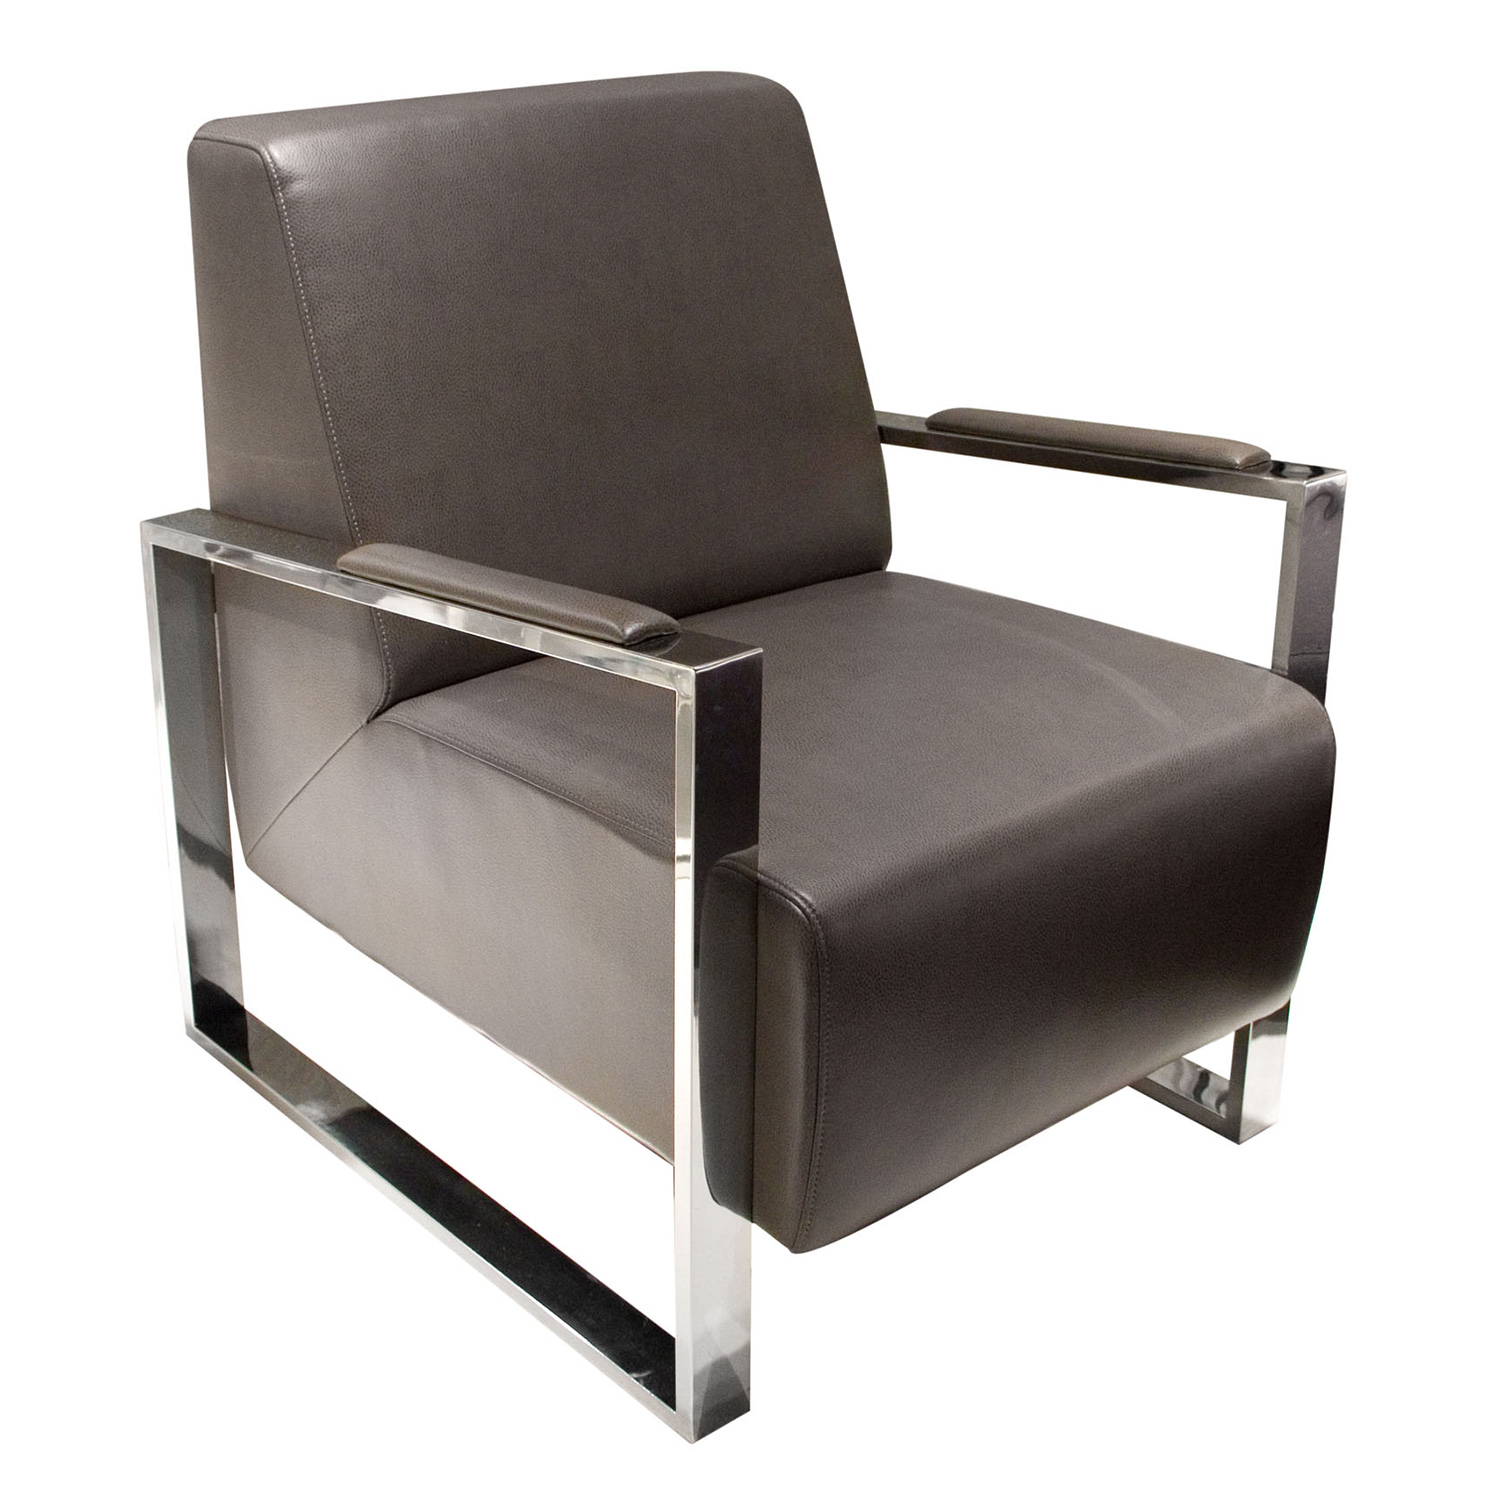 Strange Century Accent Chair In Grey Leather W Stainless Steel Frame By Diamond Sofa Machost Co Dining Chair Design Ideas Machostcouk